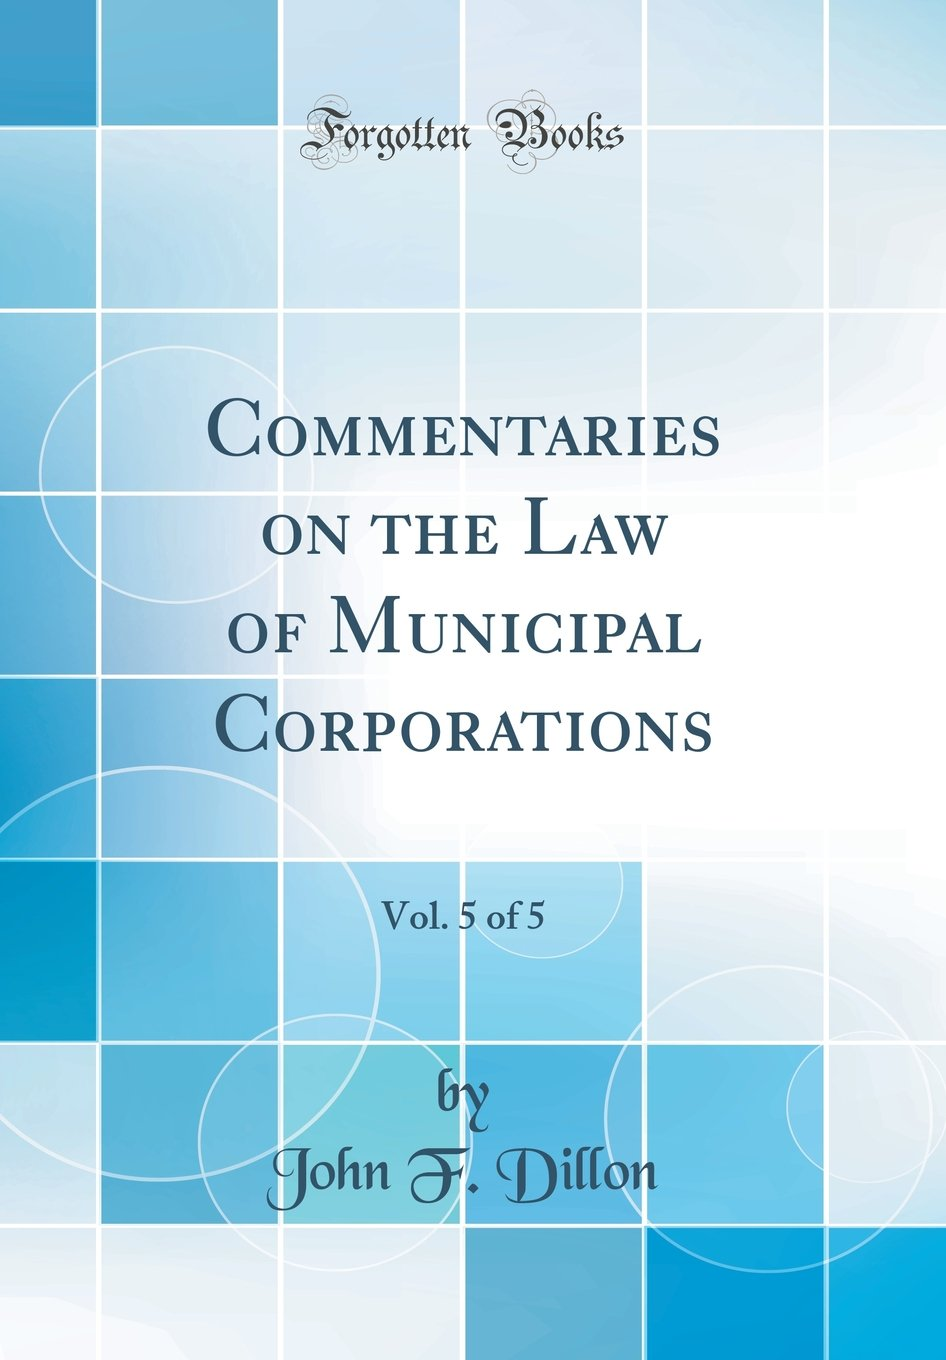 Download Commentaries on the Law of Municipal Corporations, Vol. 5 of 5 (Classic Reprint) ebook